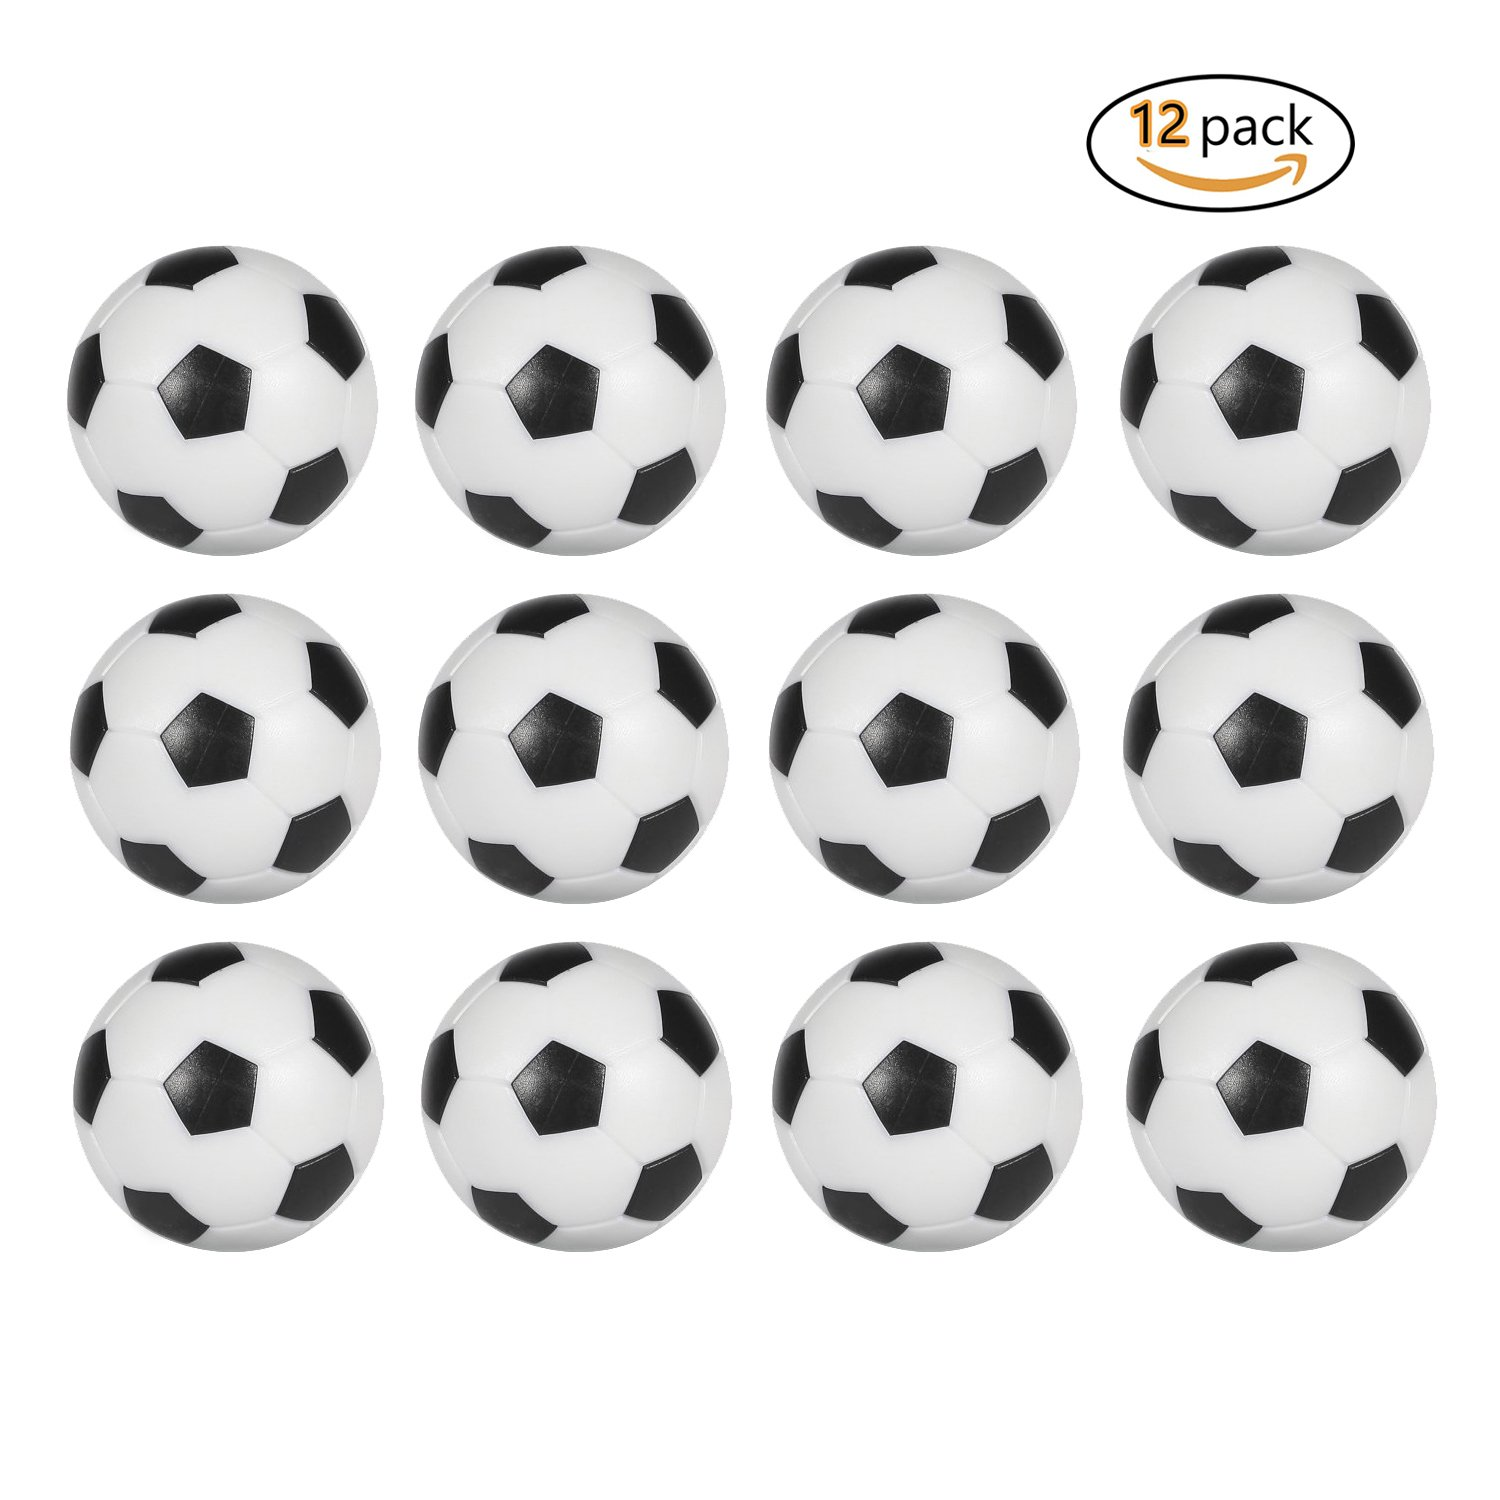 Sunfung Table Soccer Foosballs Replacement Balls Mini Multicolor 36mm Official Foosball 0201